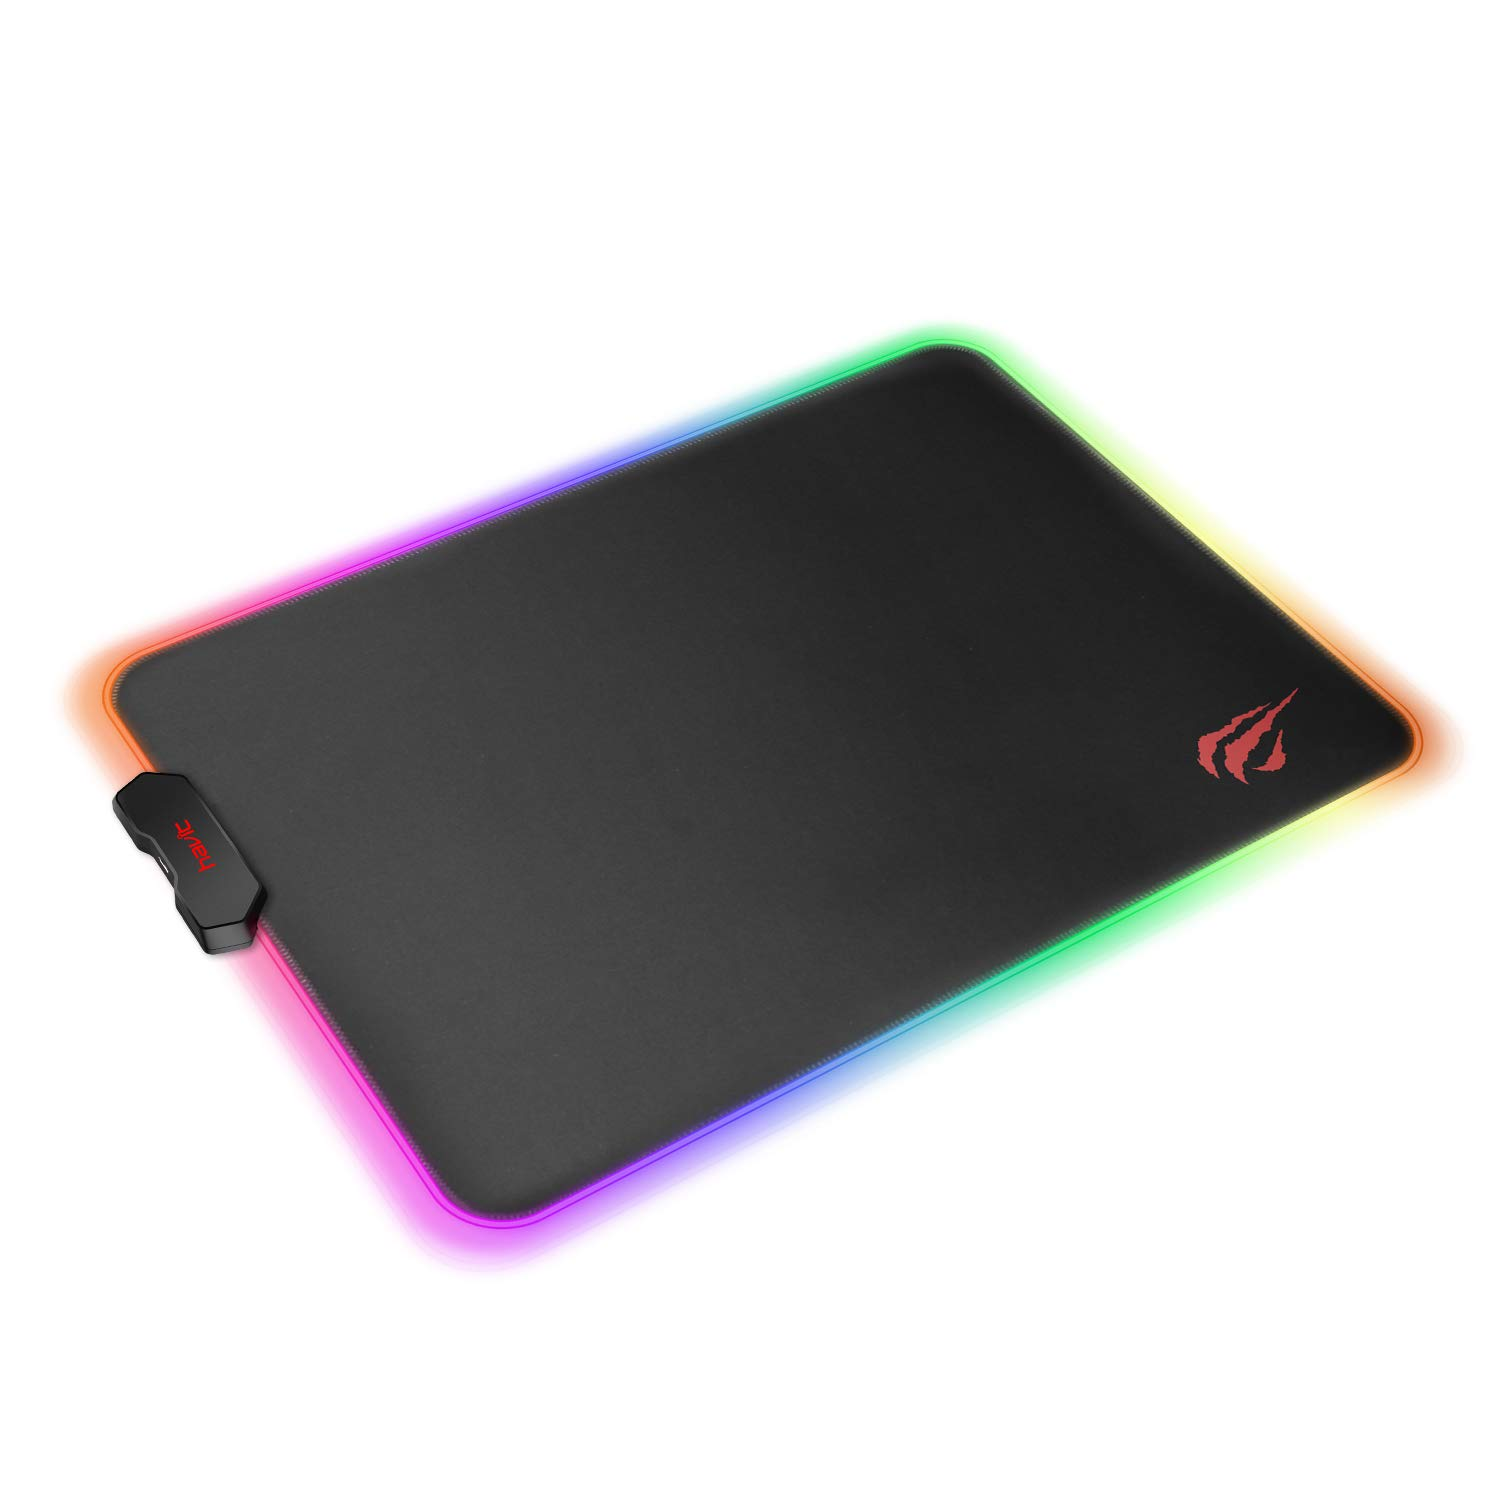 Havit RGB Gaming Mouse Pad Soft Non-Slip Rubber Base Mouse Mat for Laptop Computer PC Games (13.8 X 9.8 X 0.16 inches, Black)